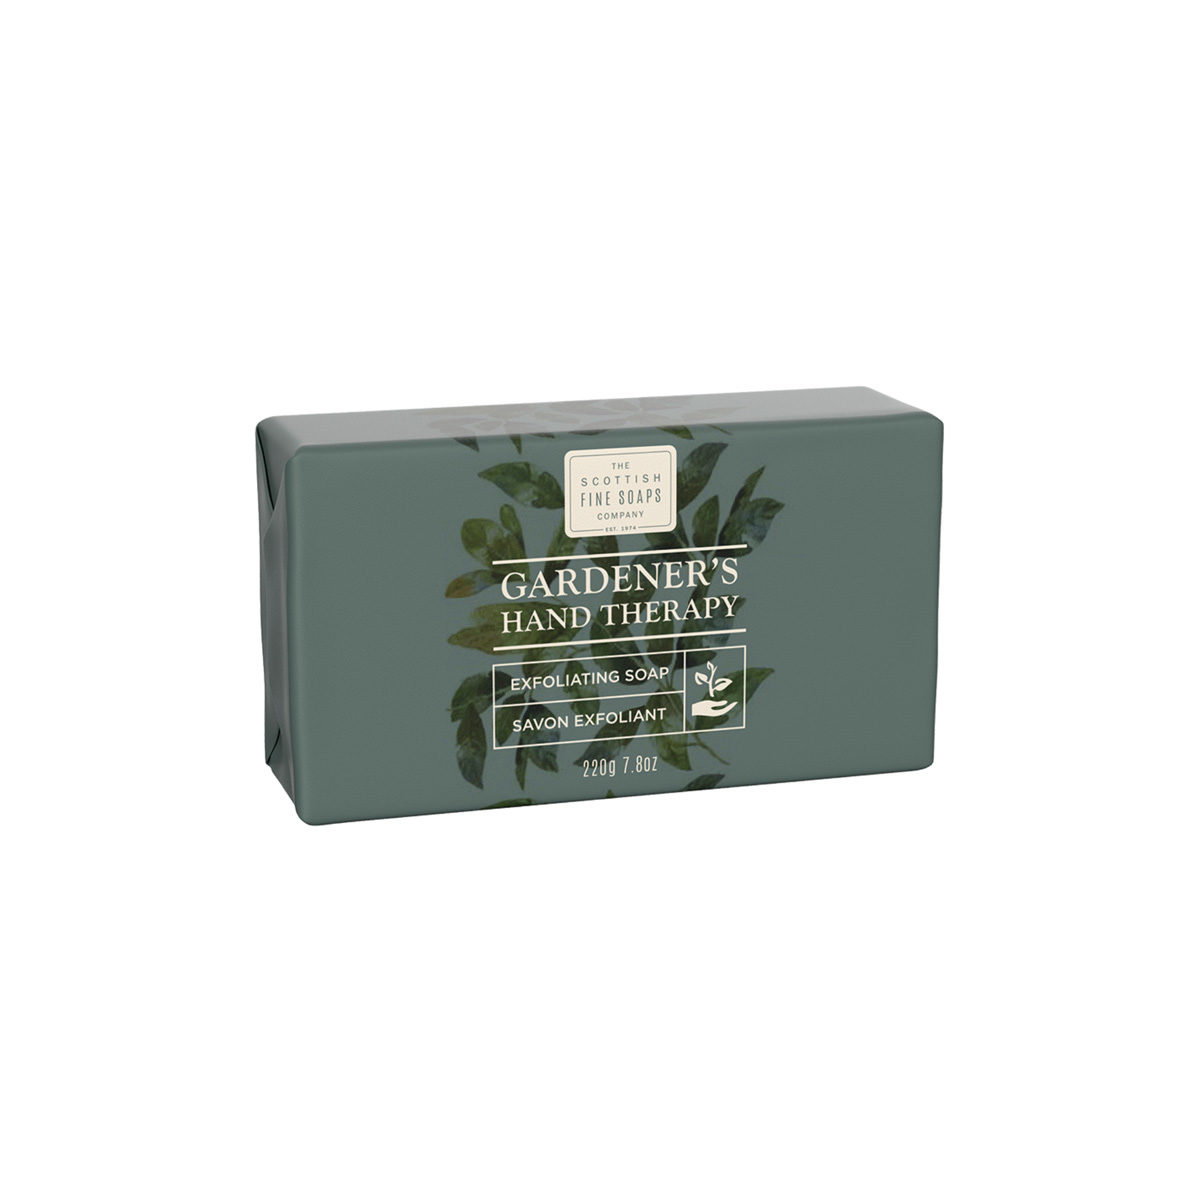 Gardener's Hand Therapy Exfoliating Soap